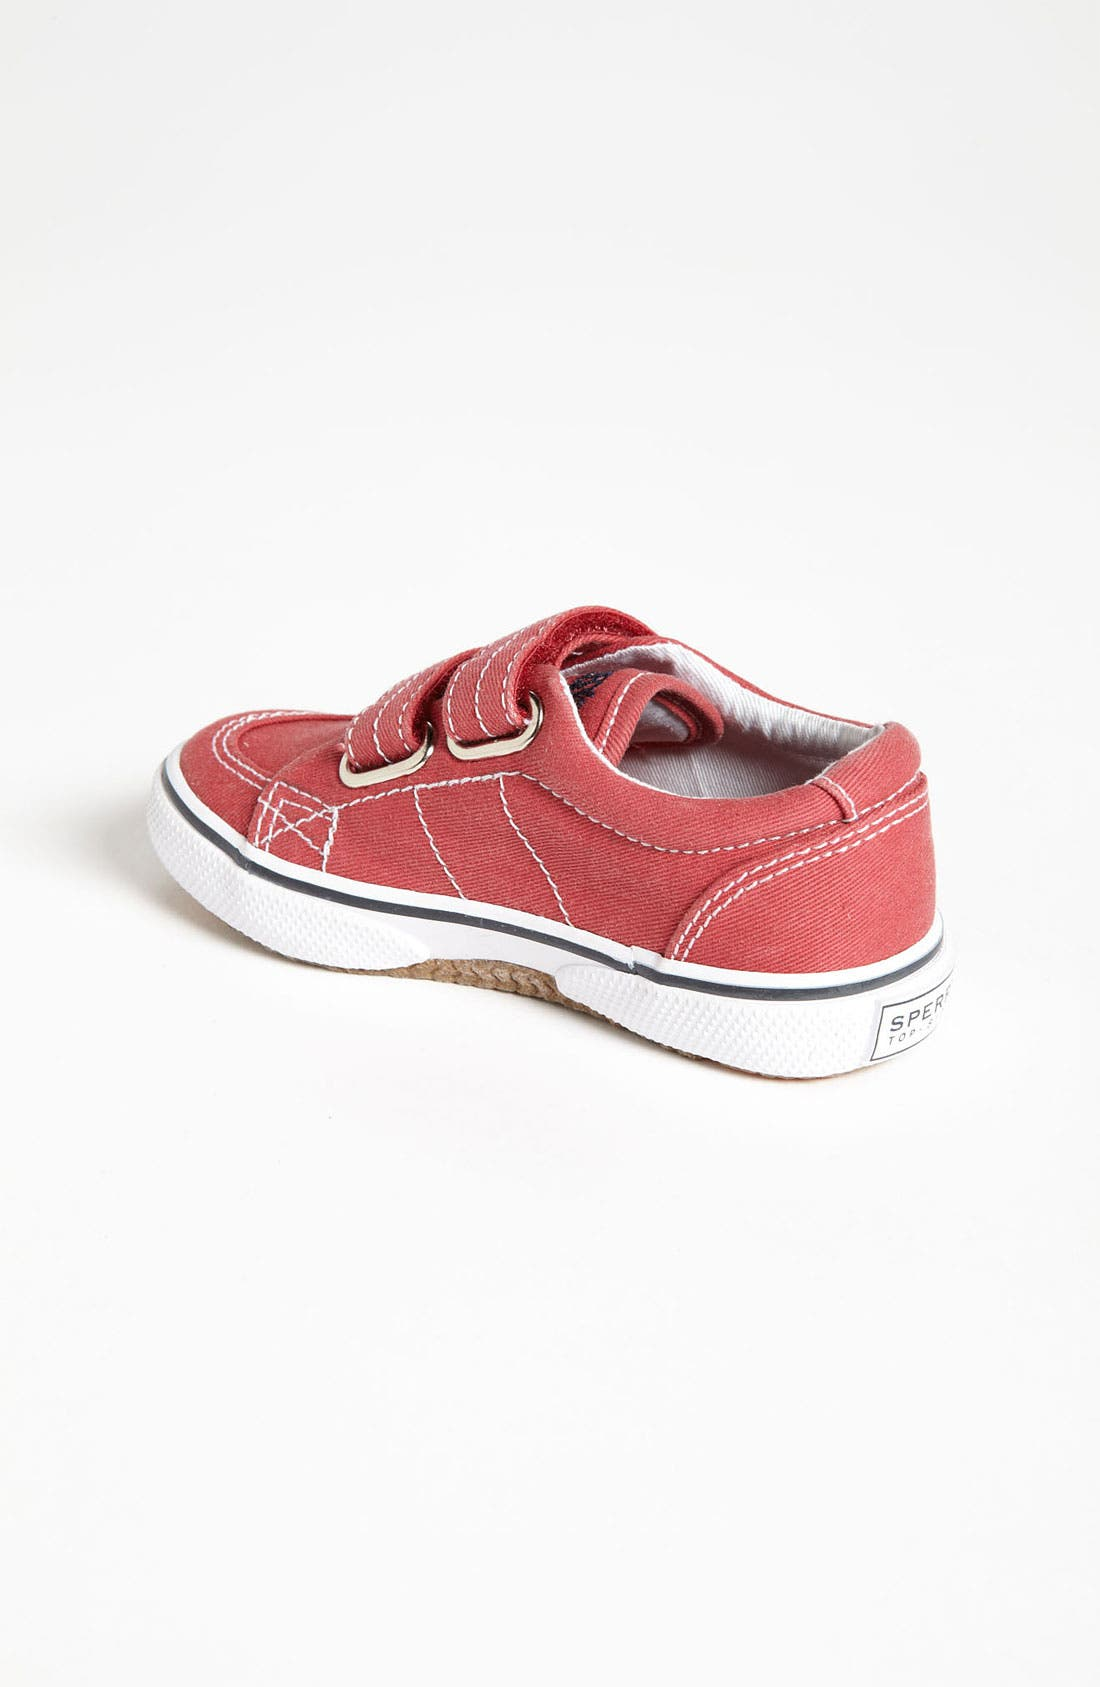 Sperry Top-Sider<sup>®</sup> Kids 'Halyard' Sneaker,                             Alternate thumbnail 15, color,